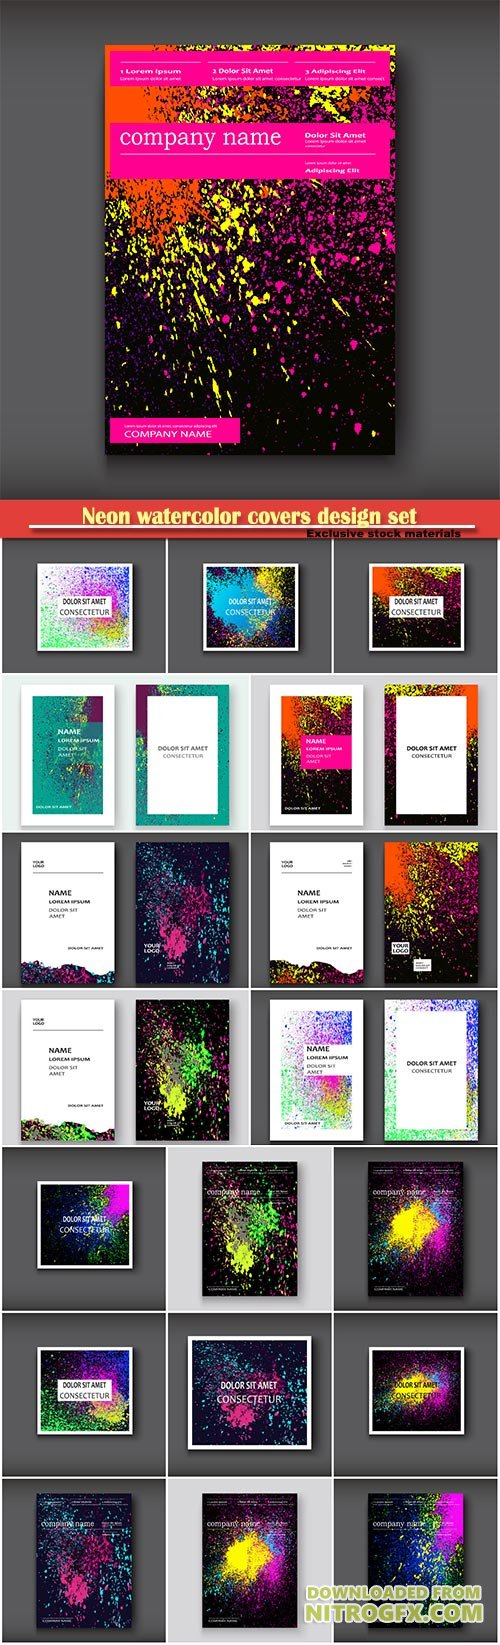 Neon watercolor covers design set, flyer, business card